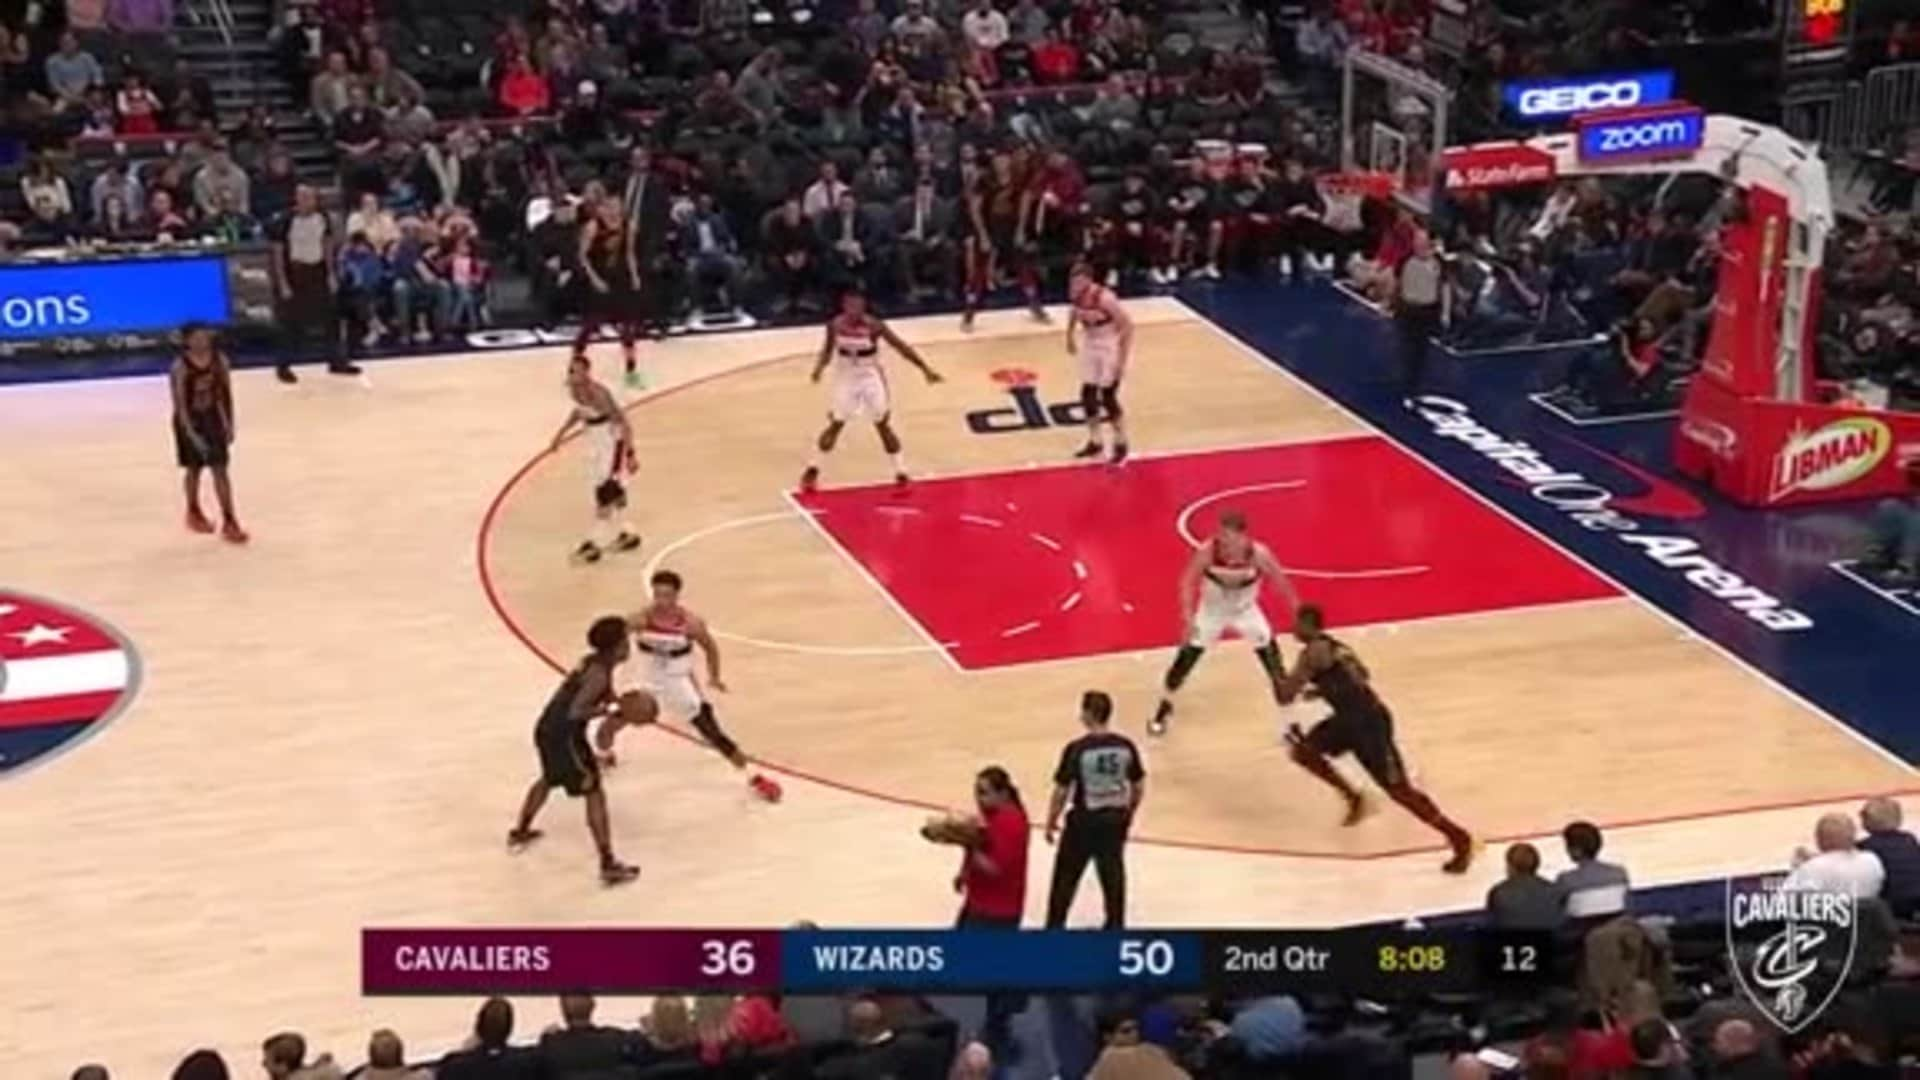 Sexton Gets Fouled While Making Three Pointer